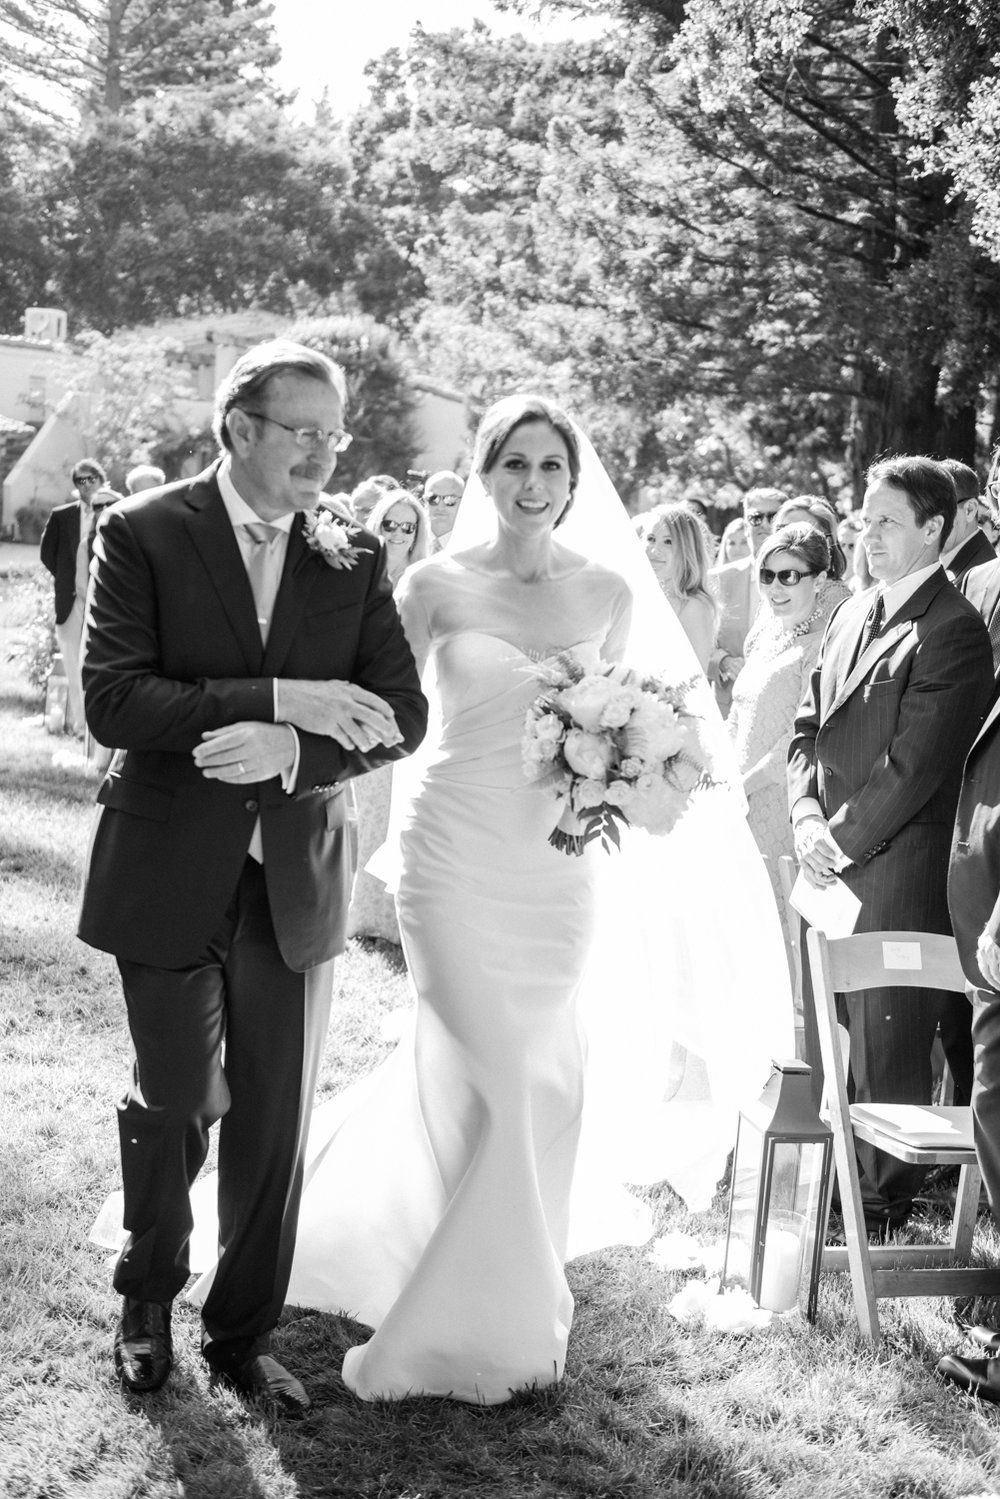 The bride's father walks her down the aisle during the ceremony at a private residence in Woodside, California; Sylvie Gil Photography